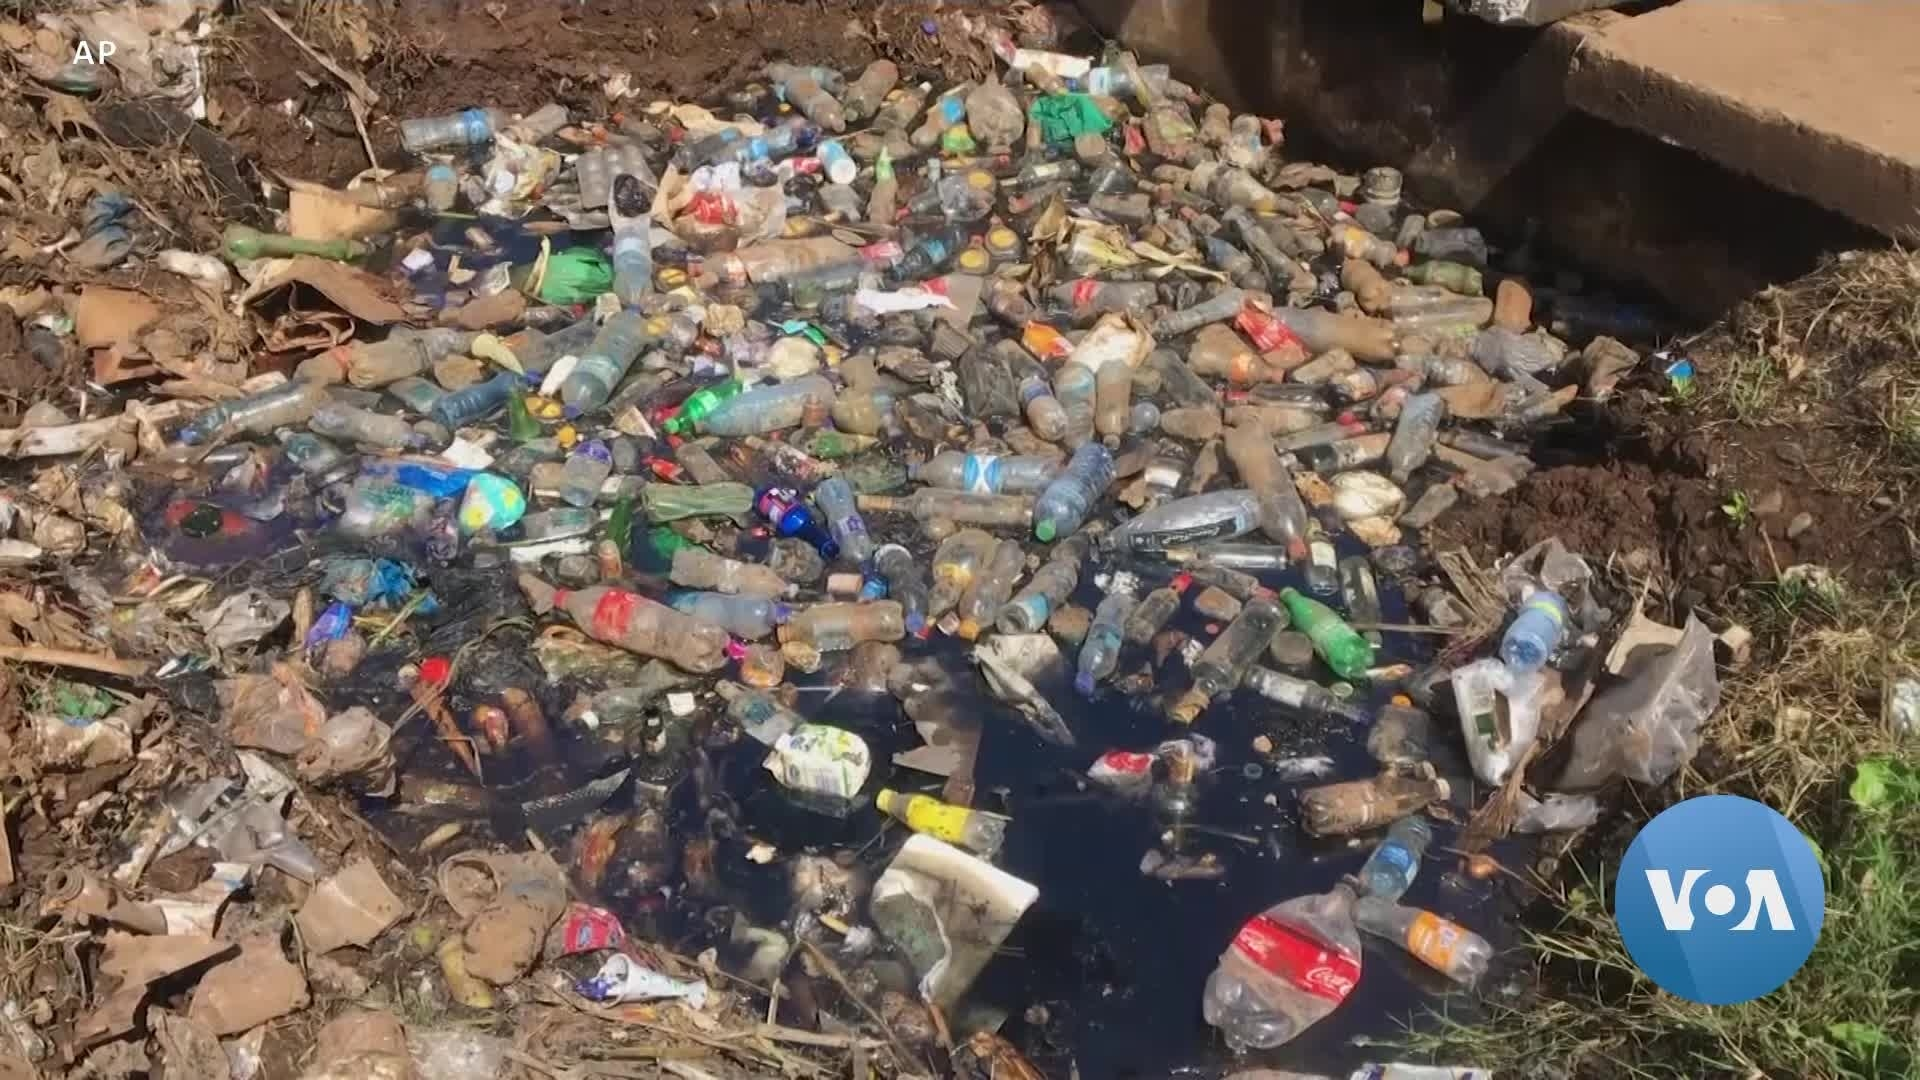 Kenya Has a Perilous Plastic Pollution Problem